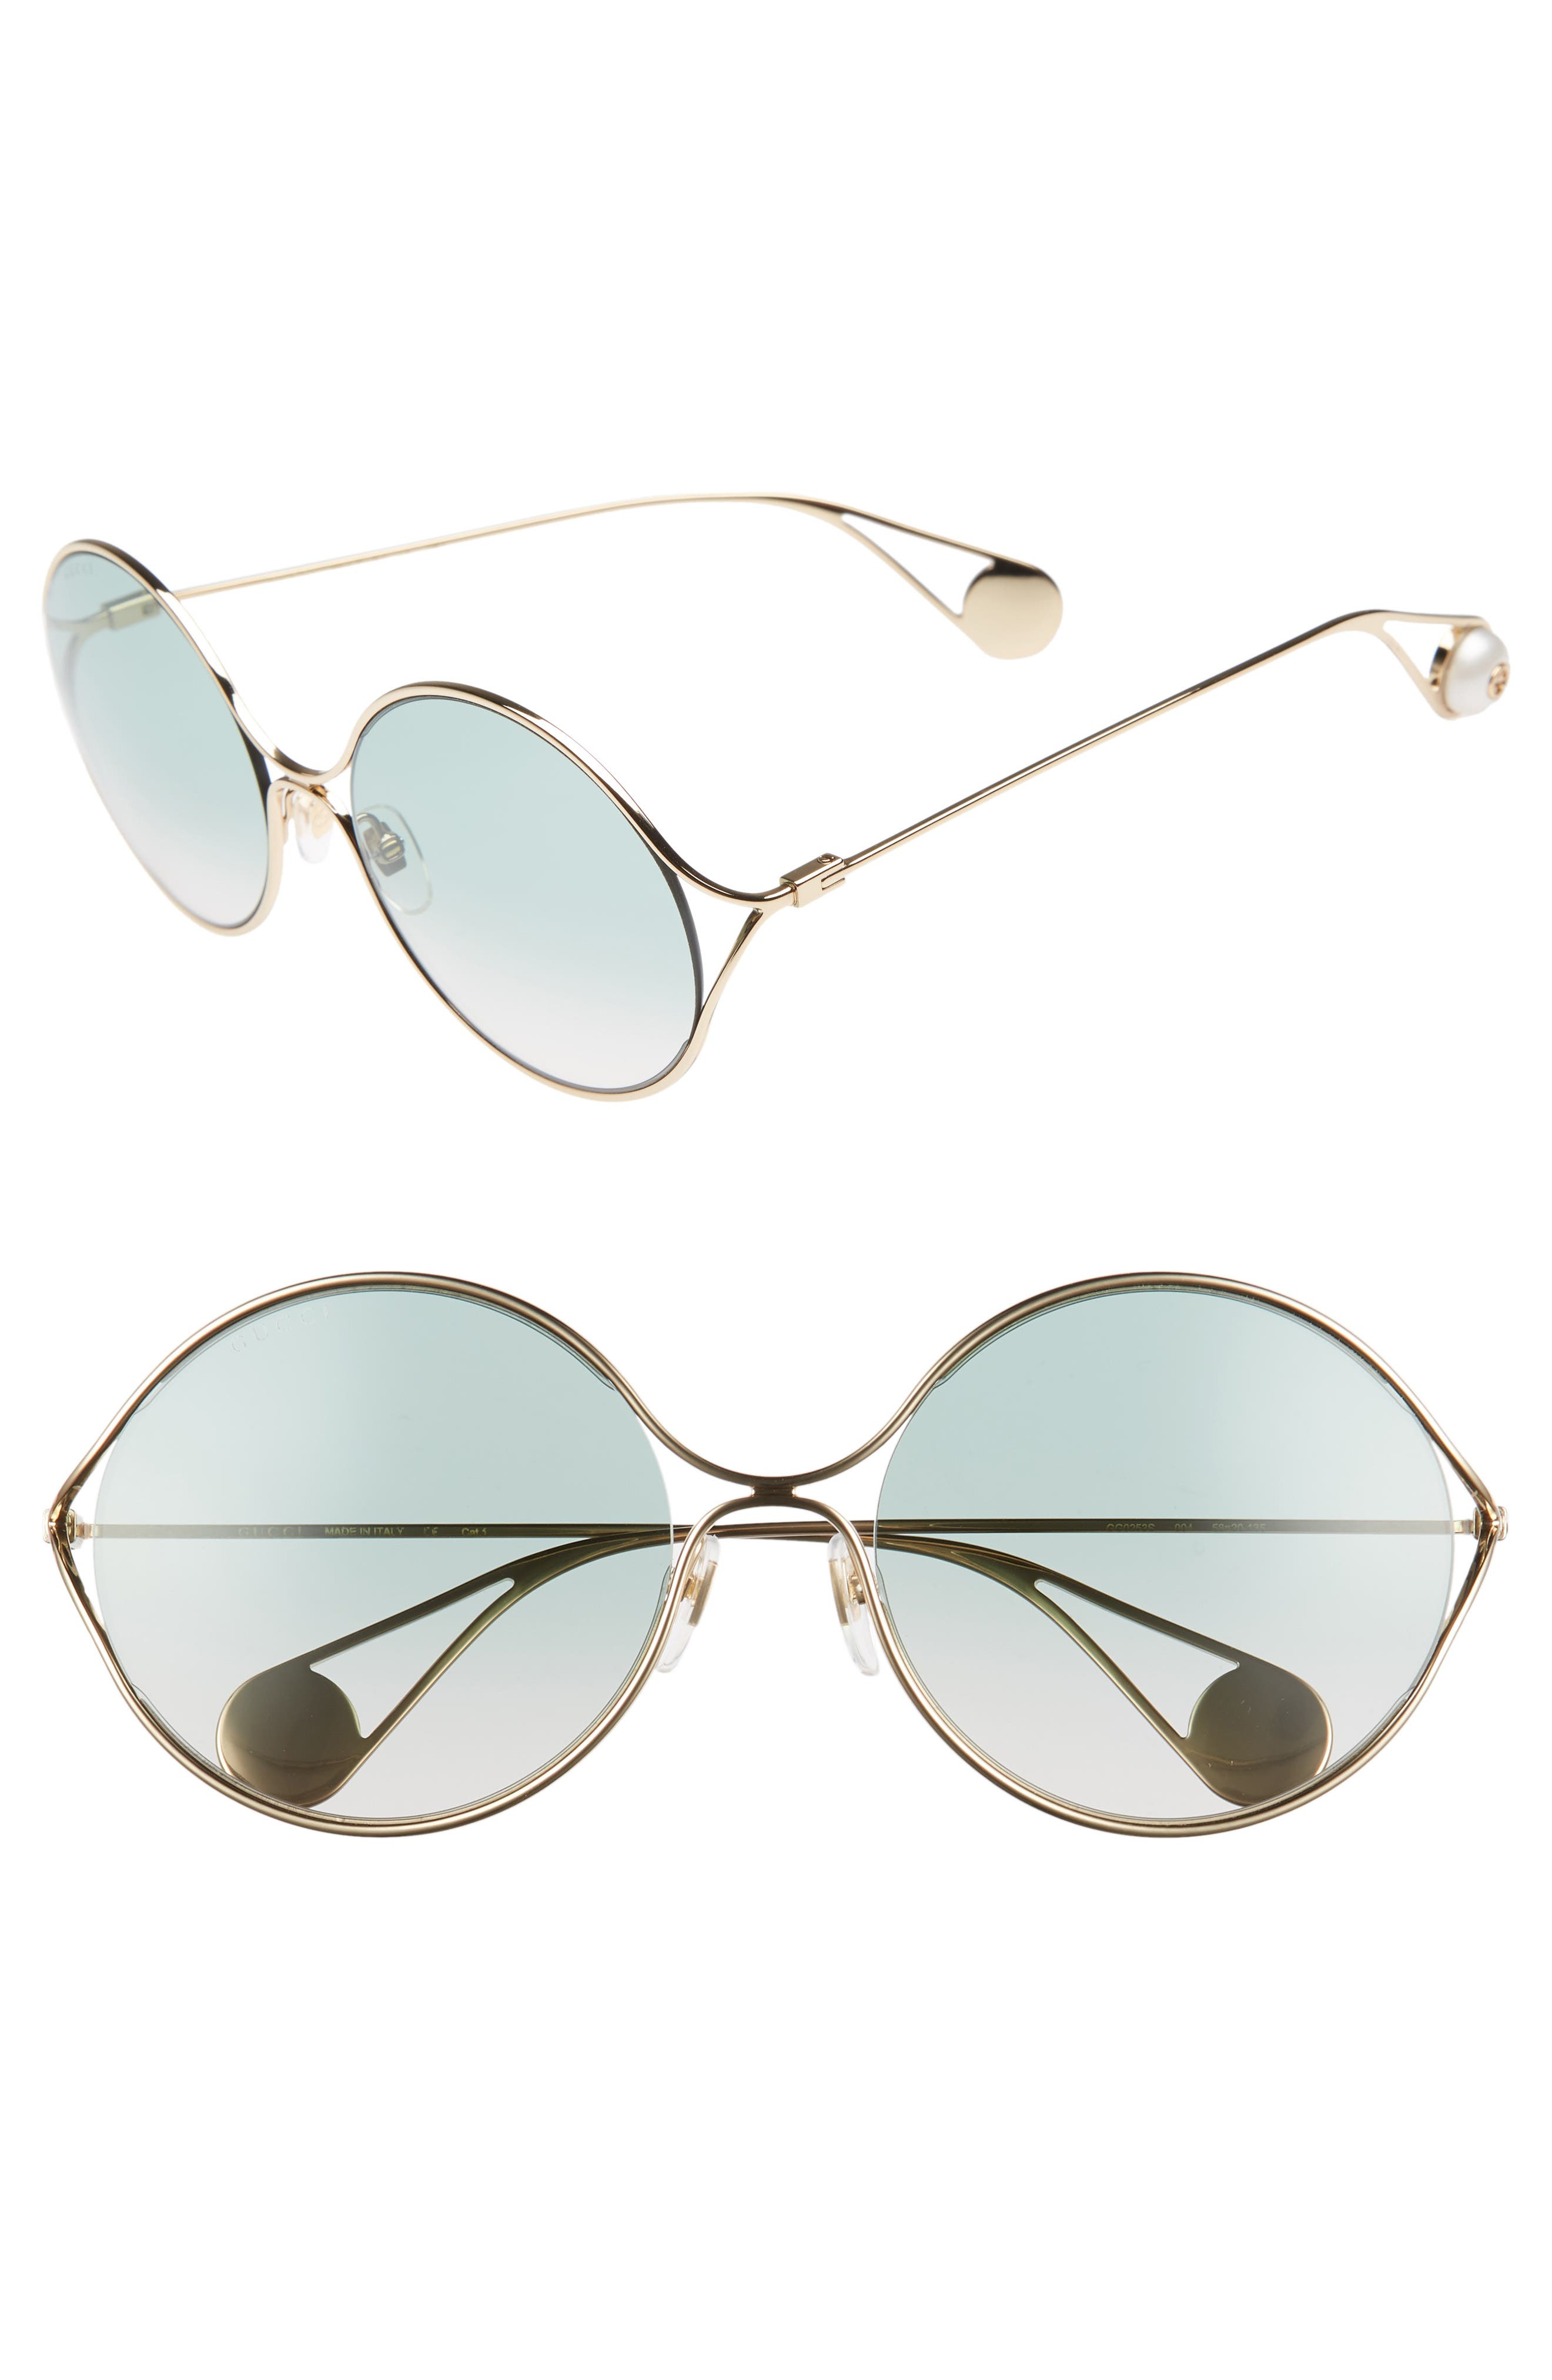 Alternate Image 1 Selected - Gucci 58mm Gradient Lens Round Sunglasses